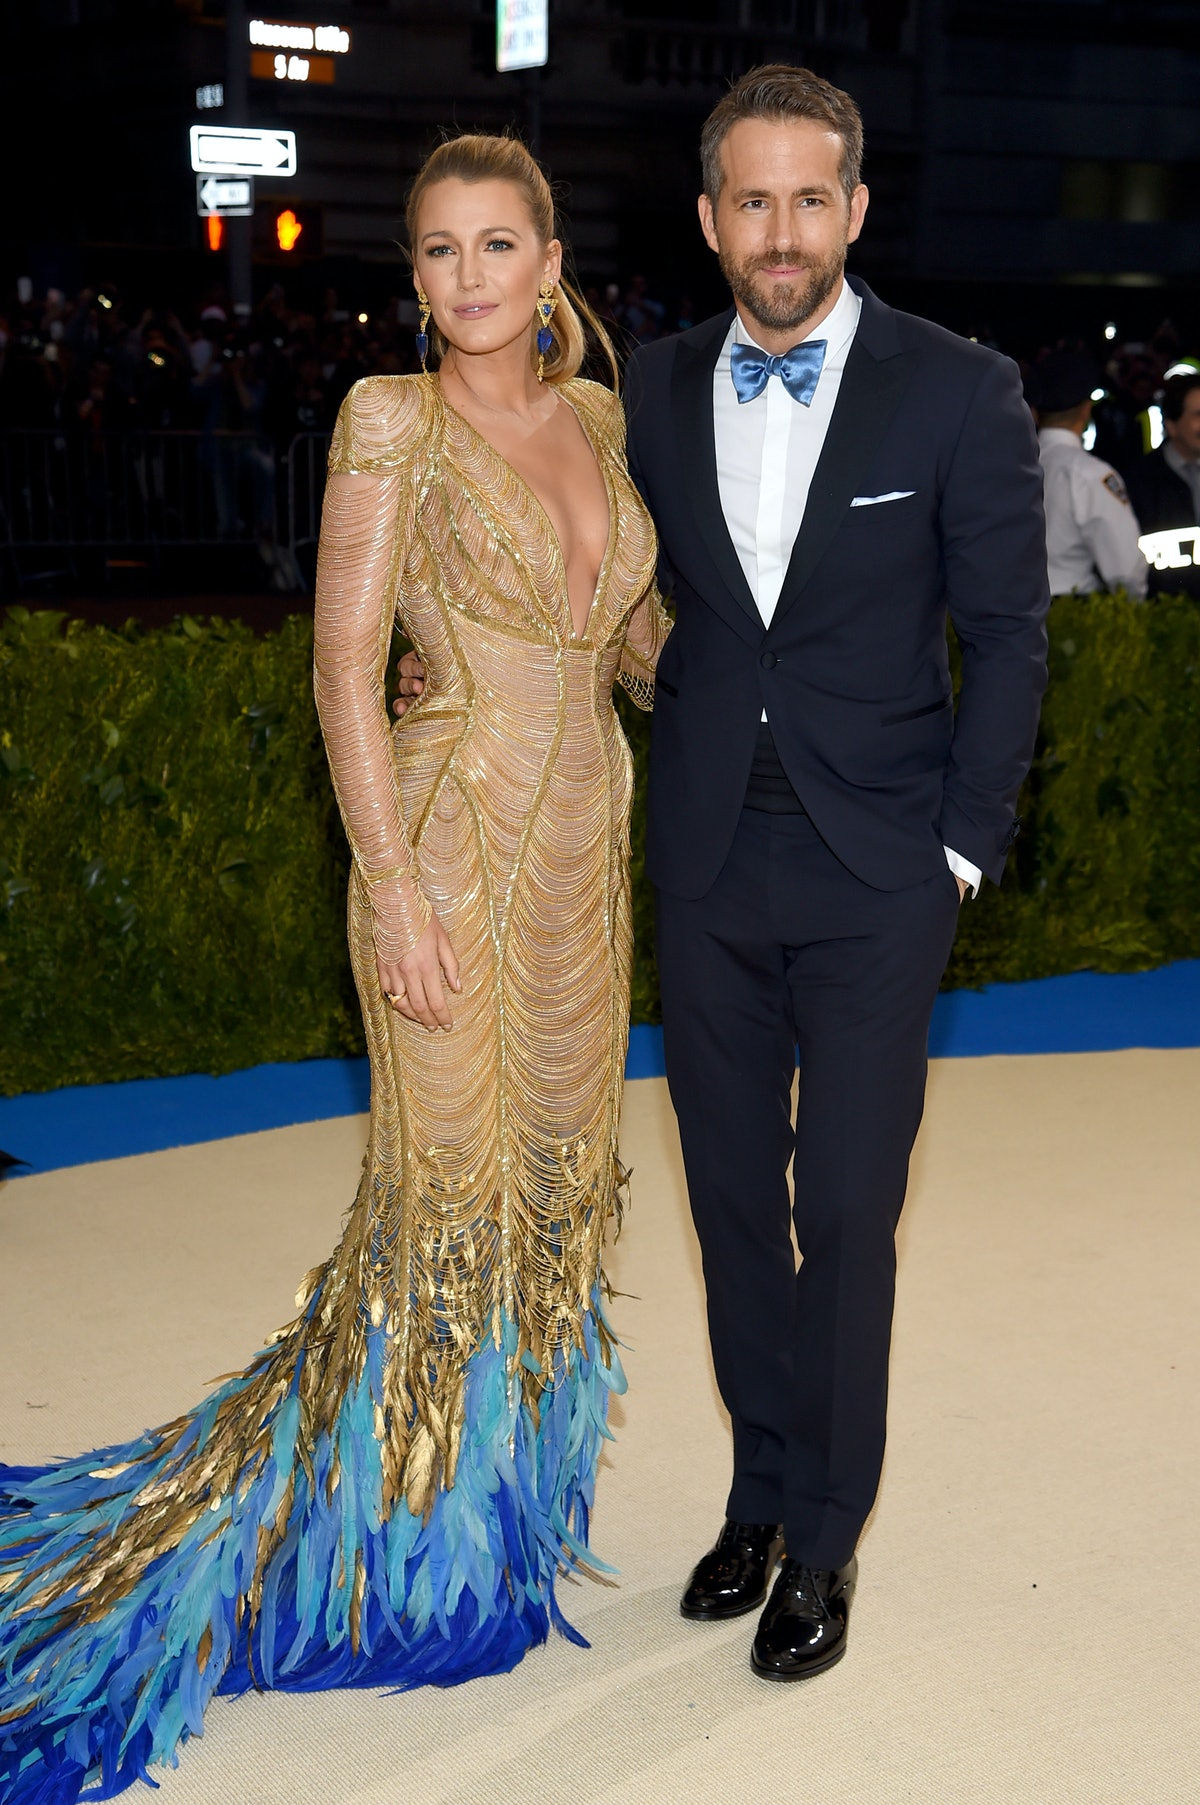 Blake Lively & Ryan Reynolds' Photos All Have This 1 Body Language Clue In Common & Here's Why